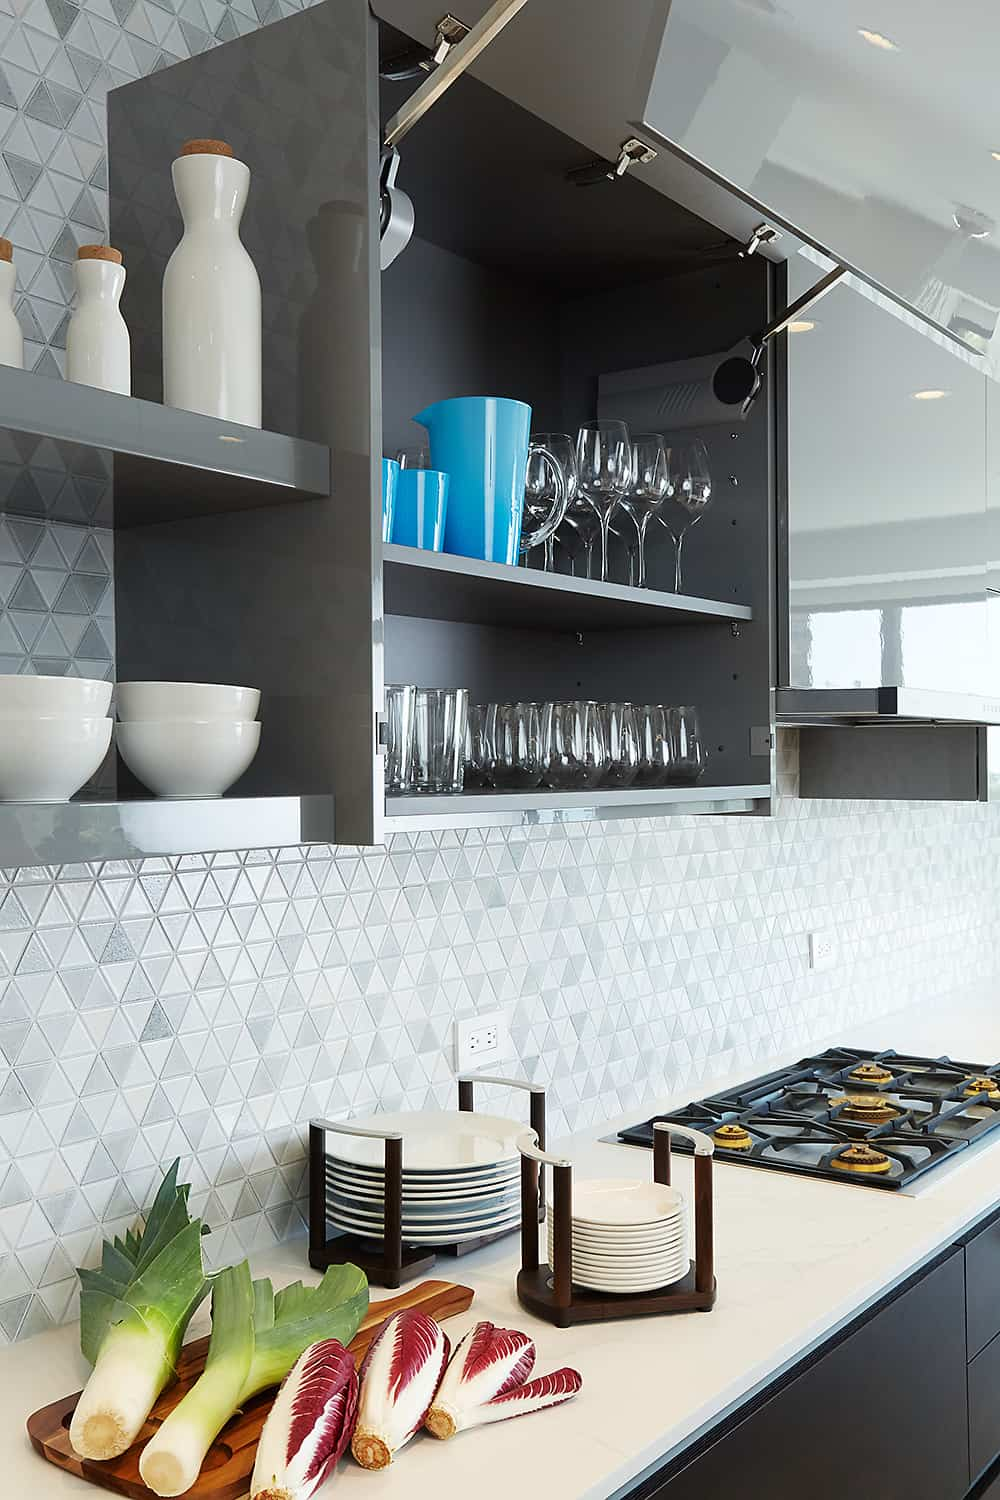 automated opening and closing luxury cabinets of the moussa kitchen project completed by eggersmann la